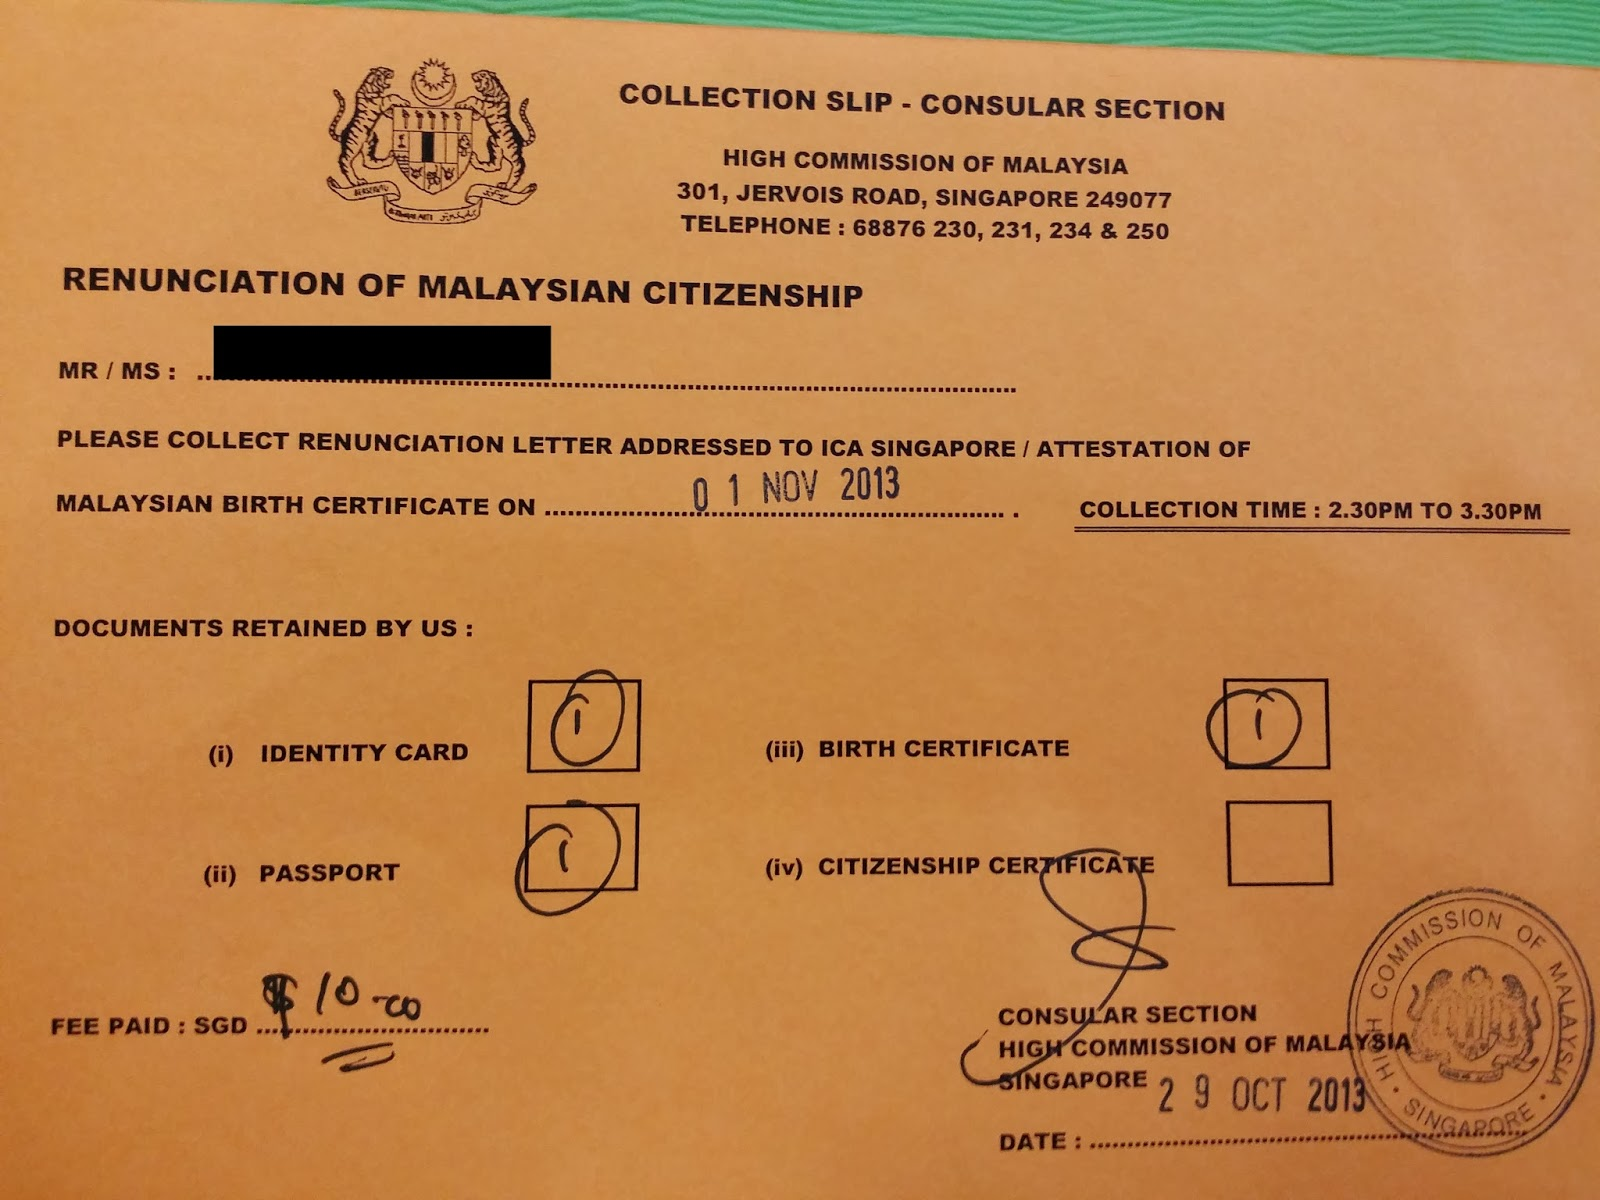 World without strangers renounce malaysian citizenship in as you can see i submitted my documents on 29 october 2013 and it was reflected on the slip that i can collect it on 1st november 2013 between 230pm to aiddatafo Choice Image